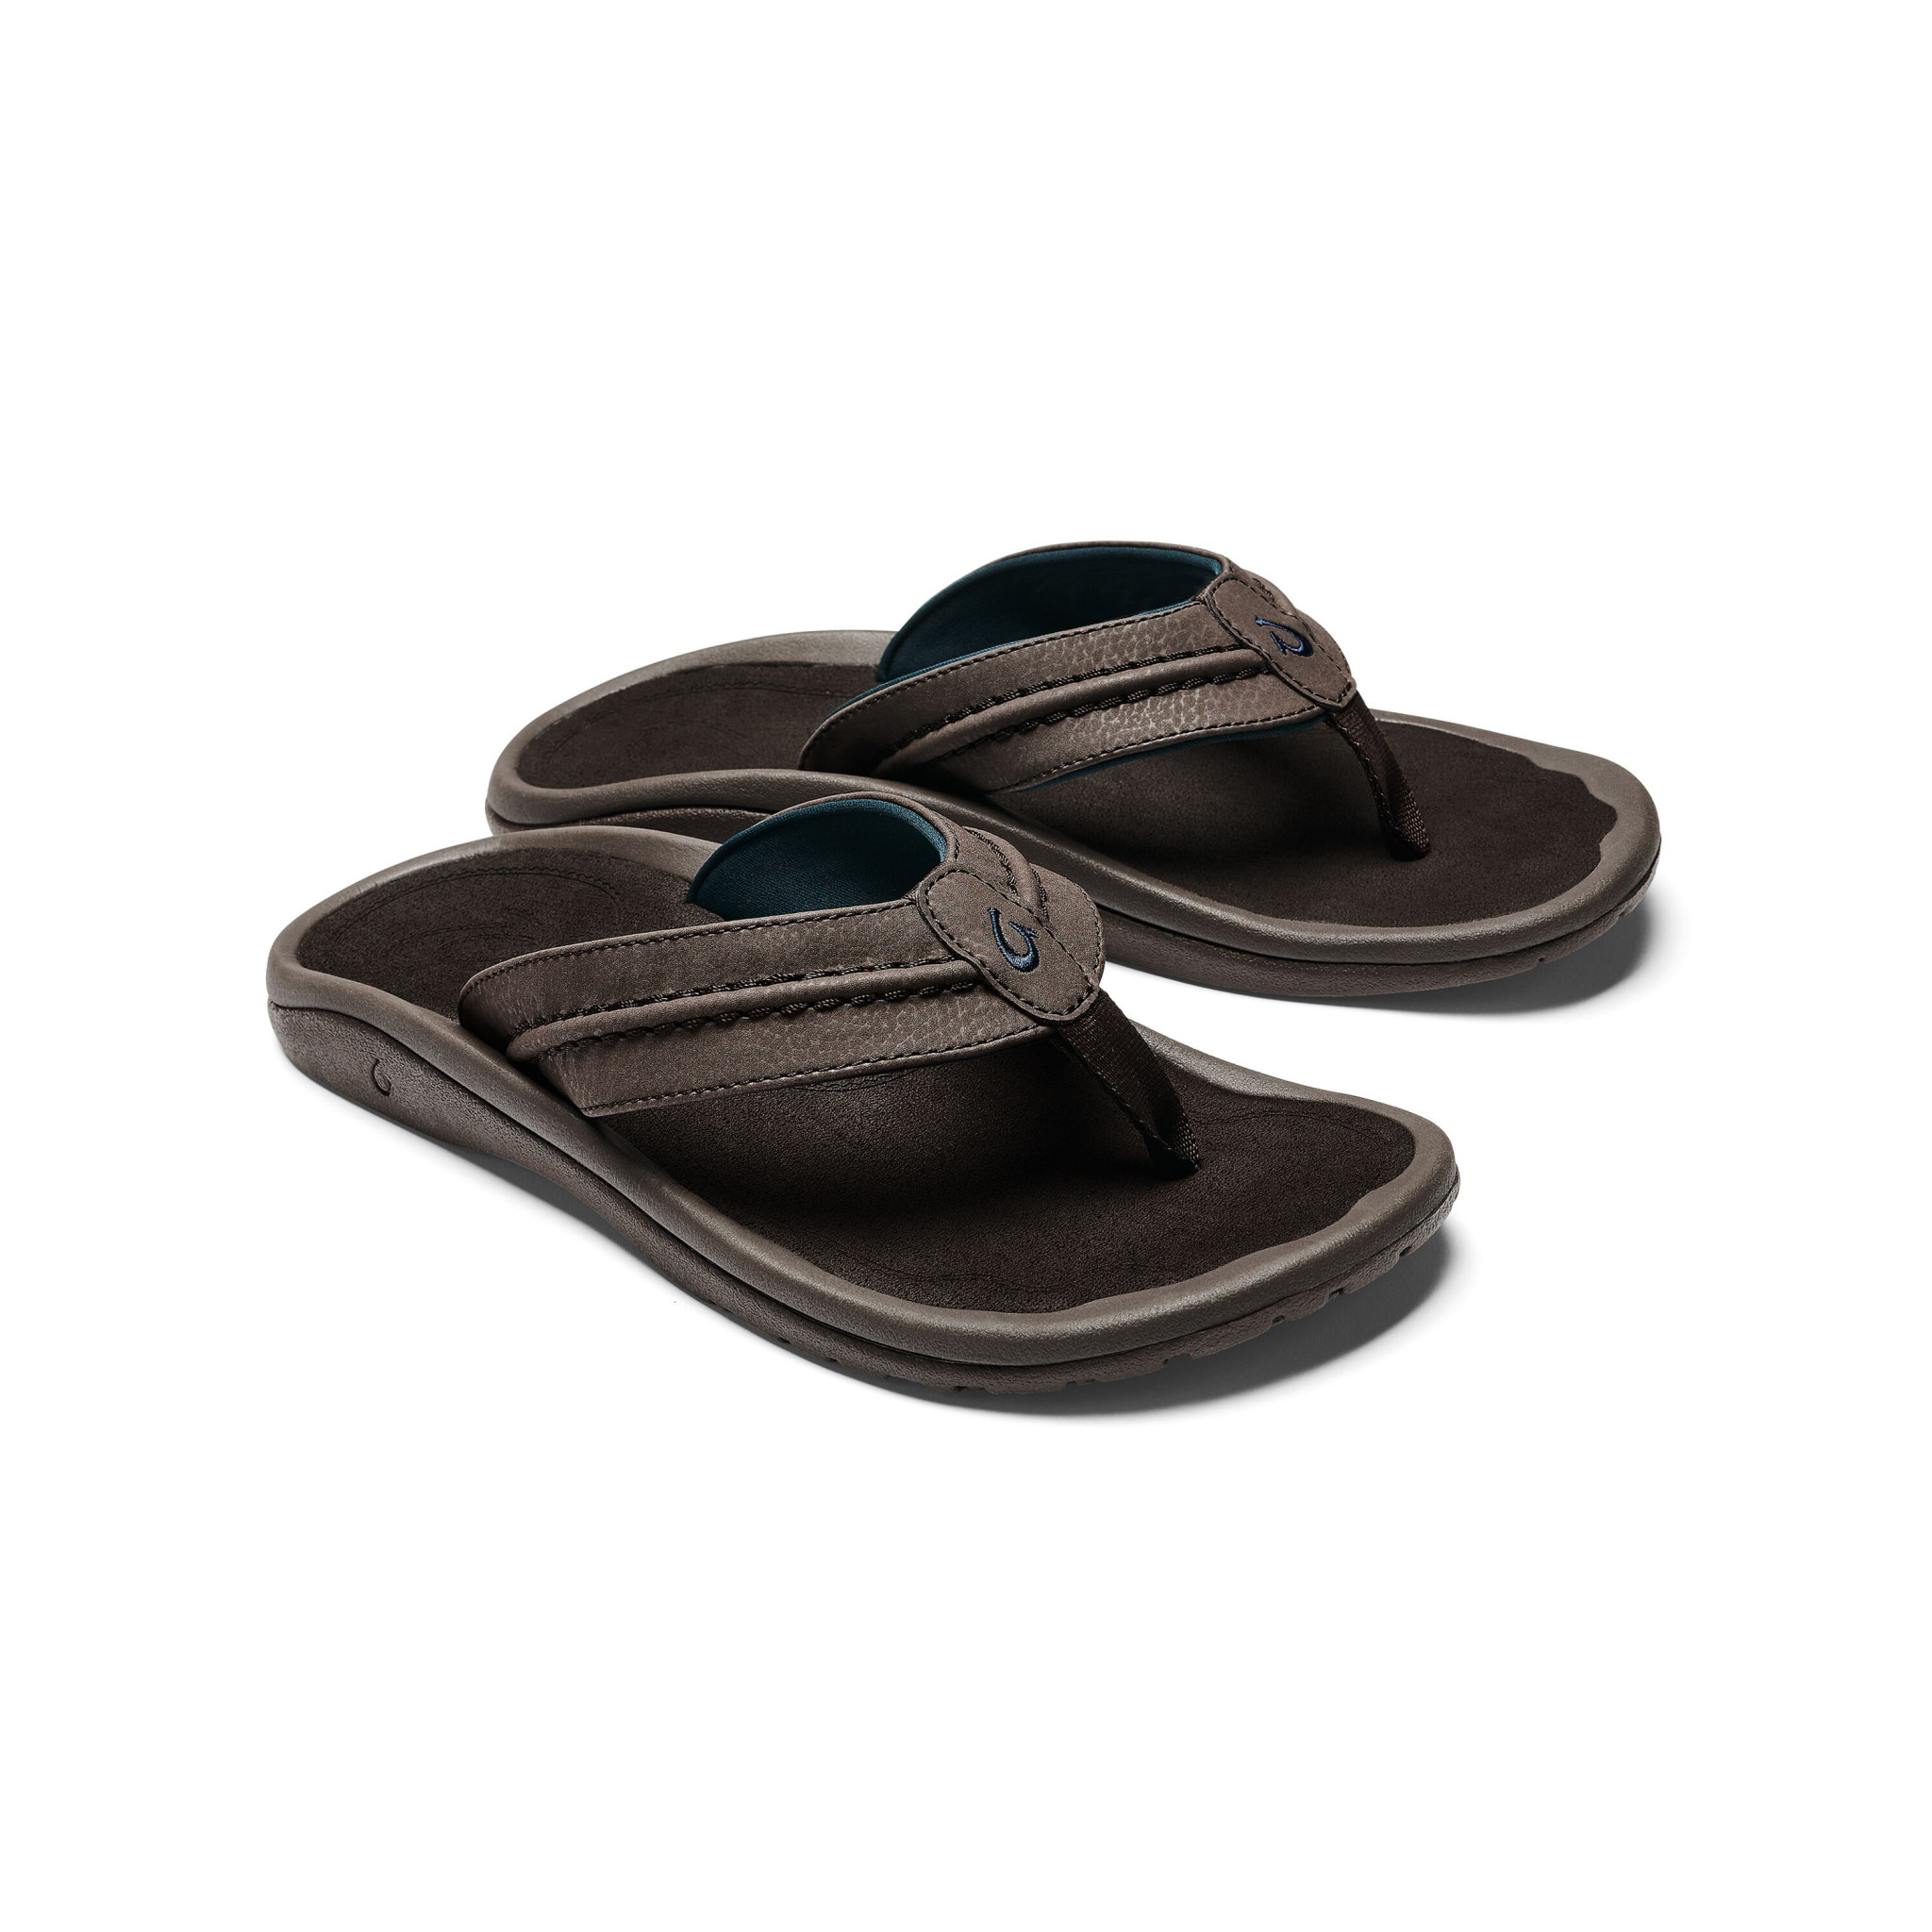 olukai-hokua-dark-wood-men's-beach-sandals Available online or in store at assembly88 men's shop in Allentown, PA